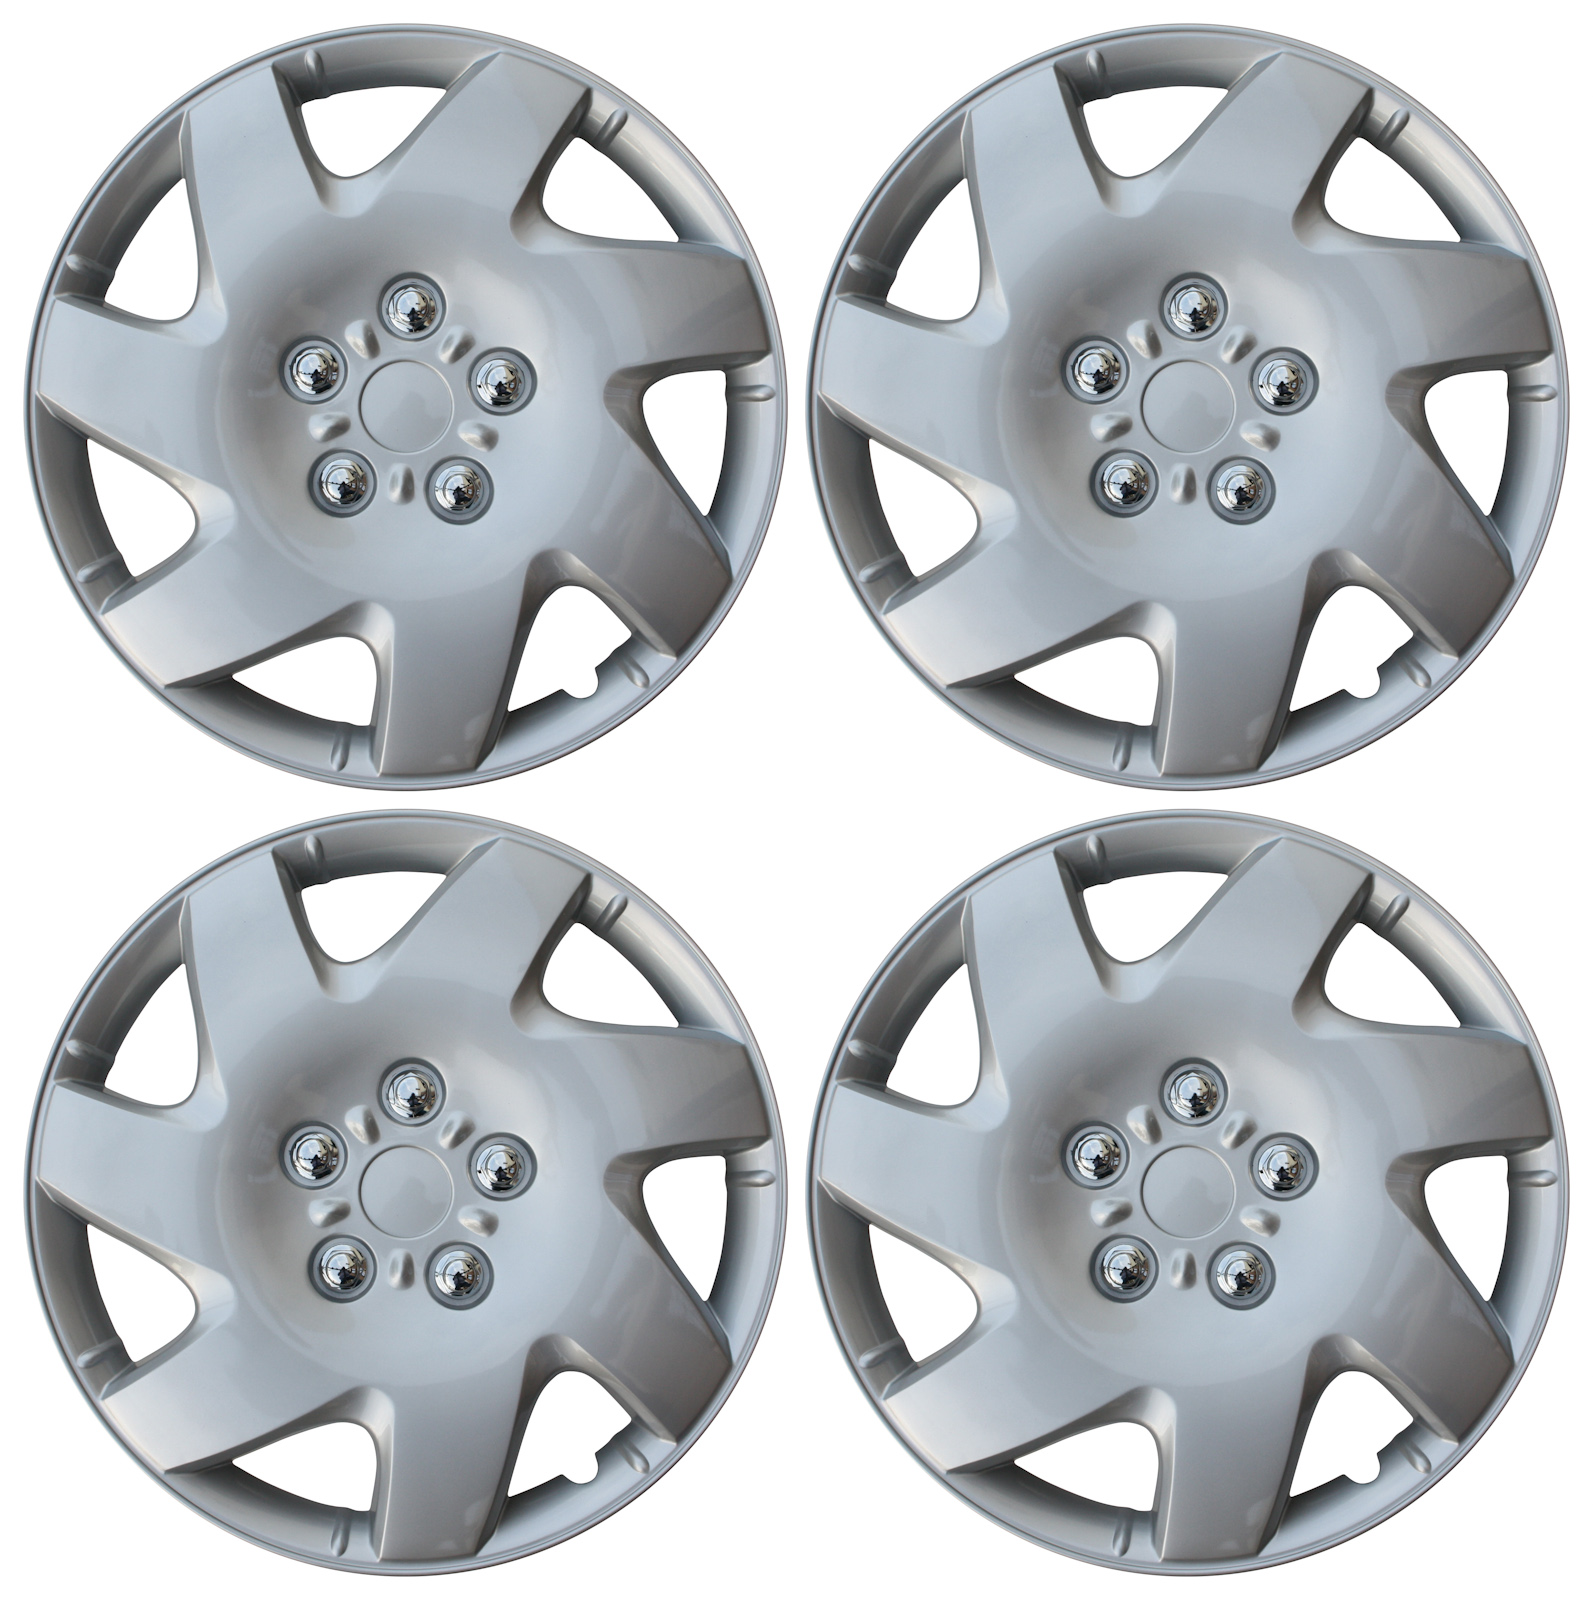 "Hub Cap ABS Silver 16"" Inch Rim Wheel Skin Cover Center 4 pc Set Caps Covers"